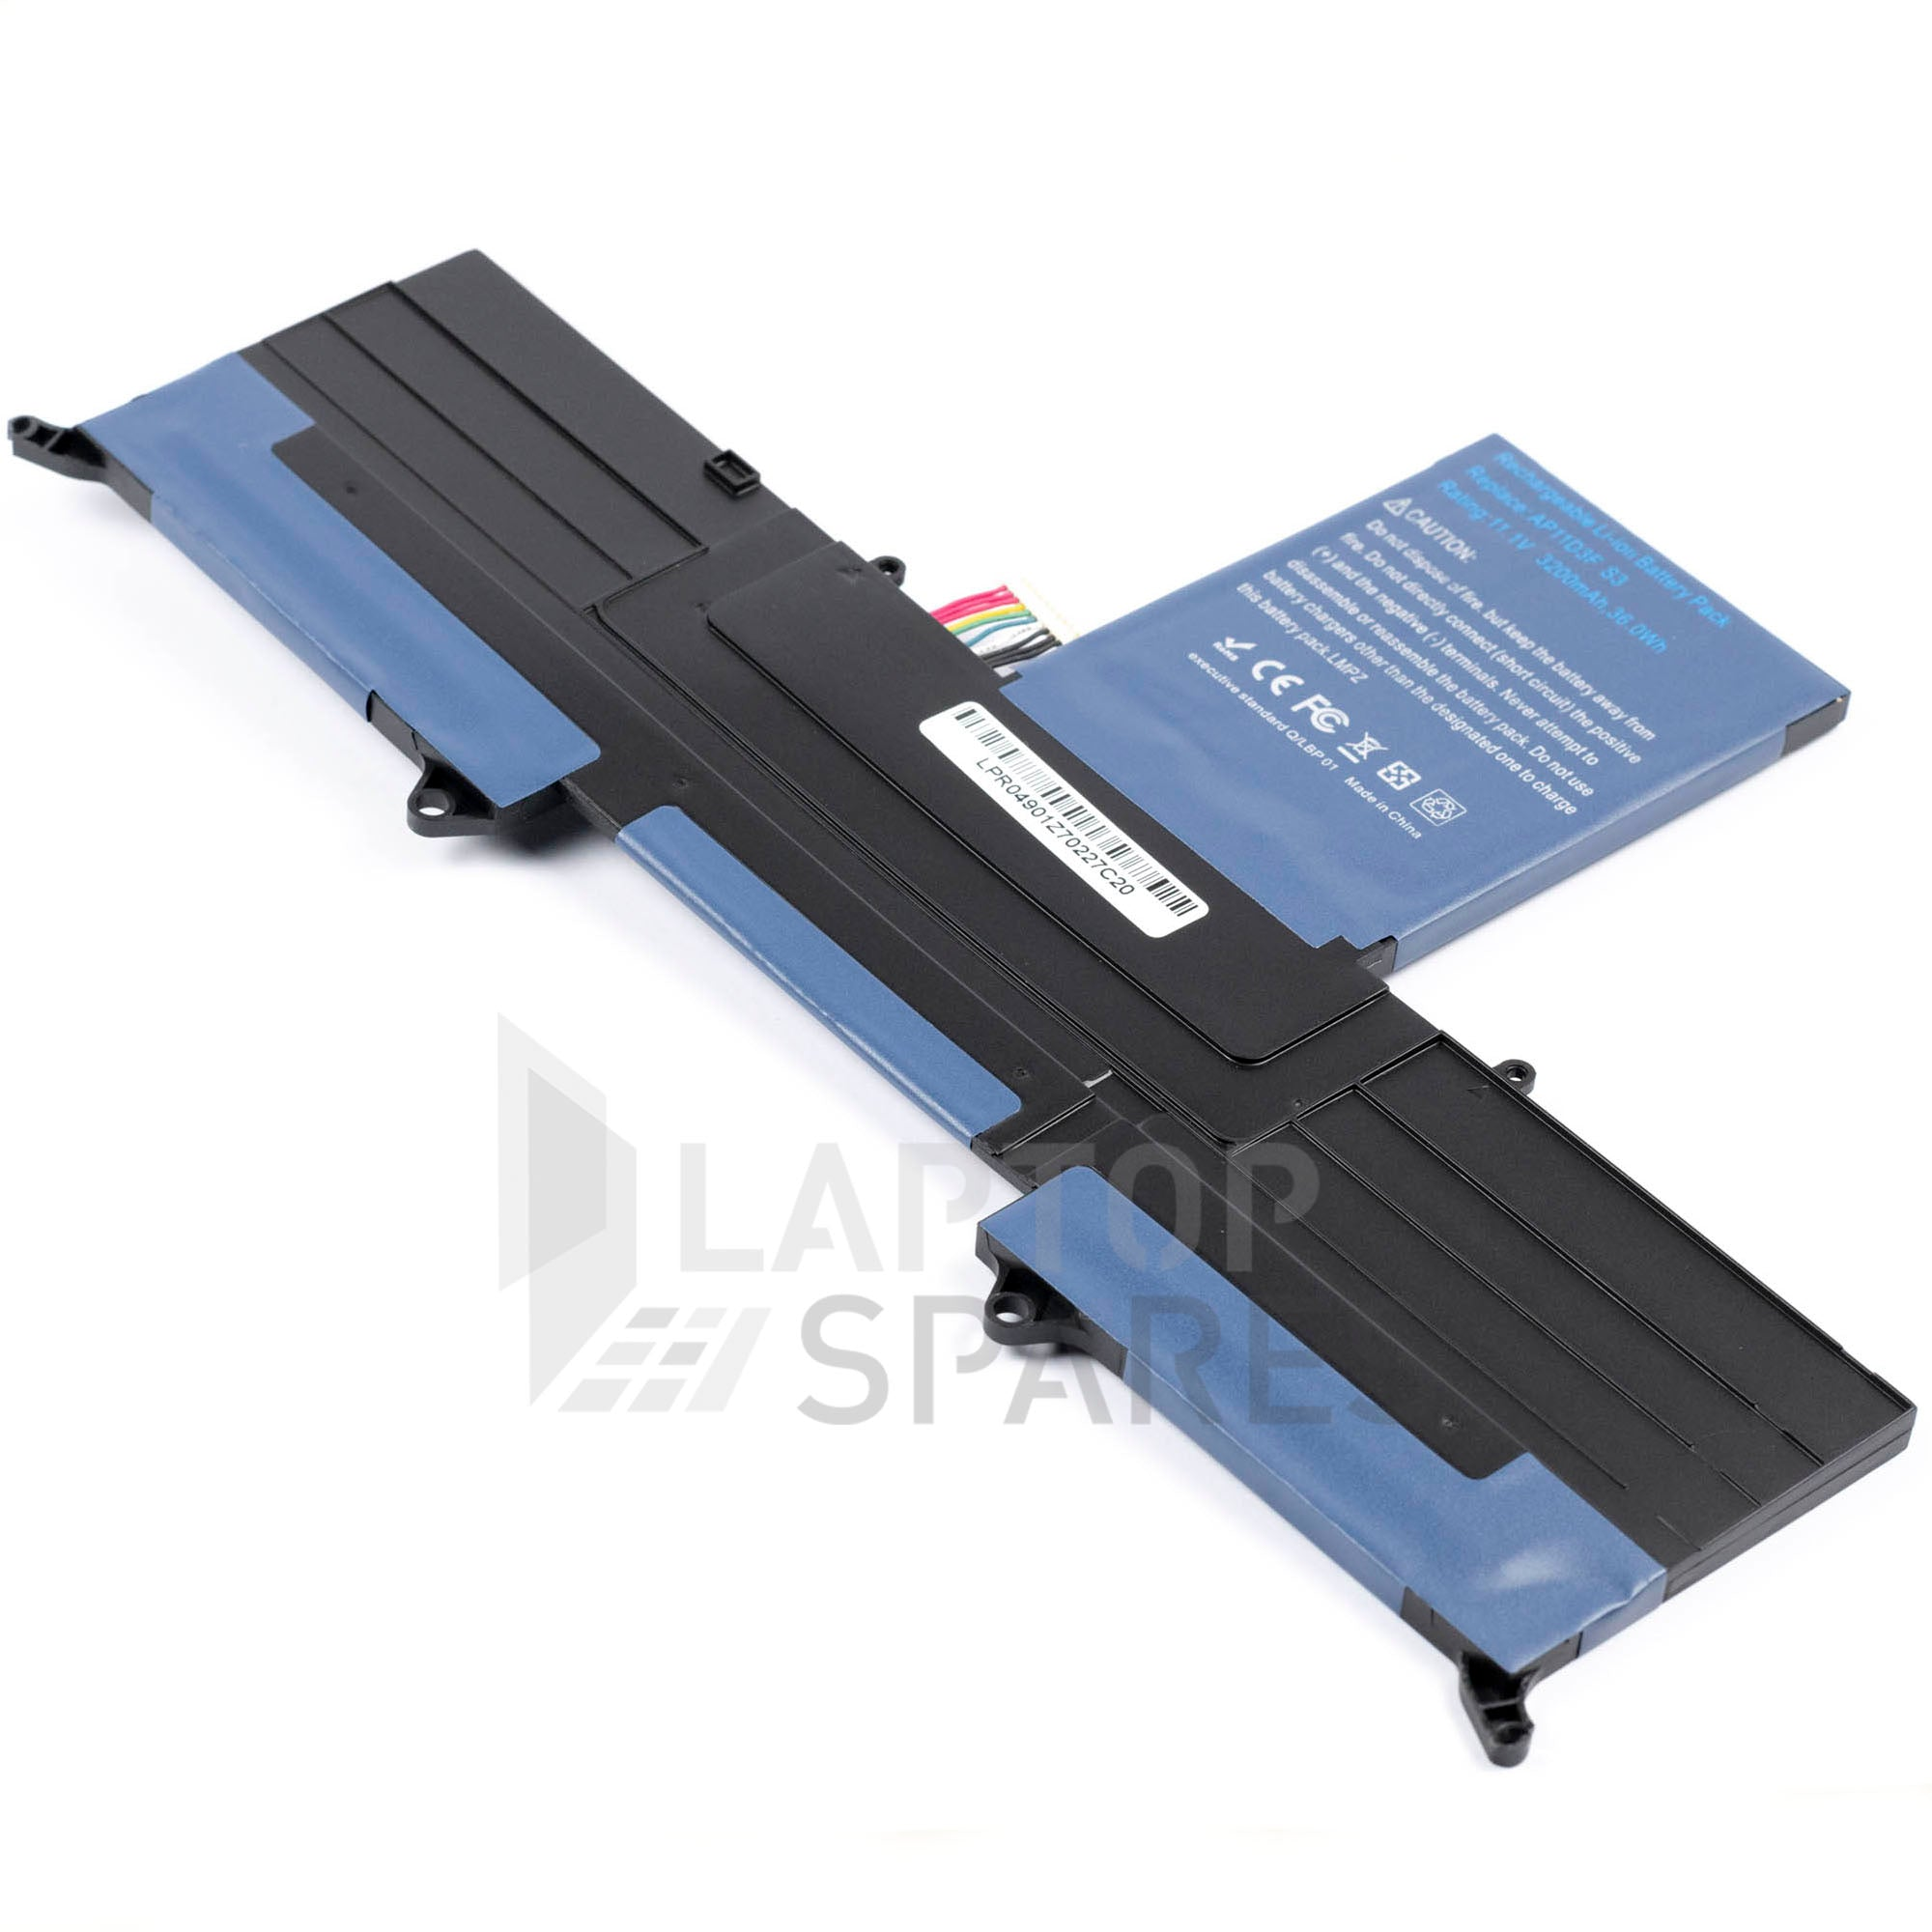 Acer Aspire S3-951 3200mAh 3 Cell Battery